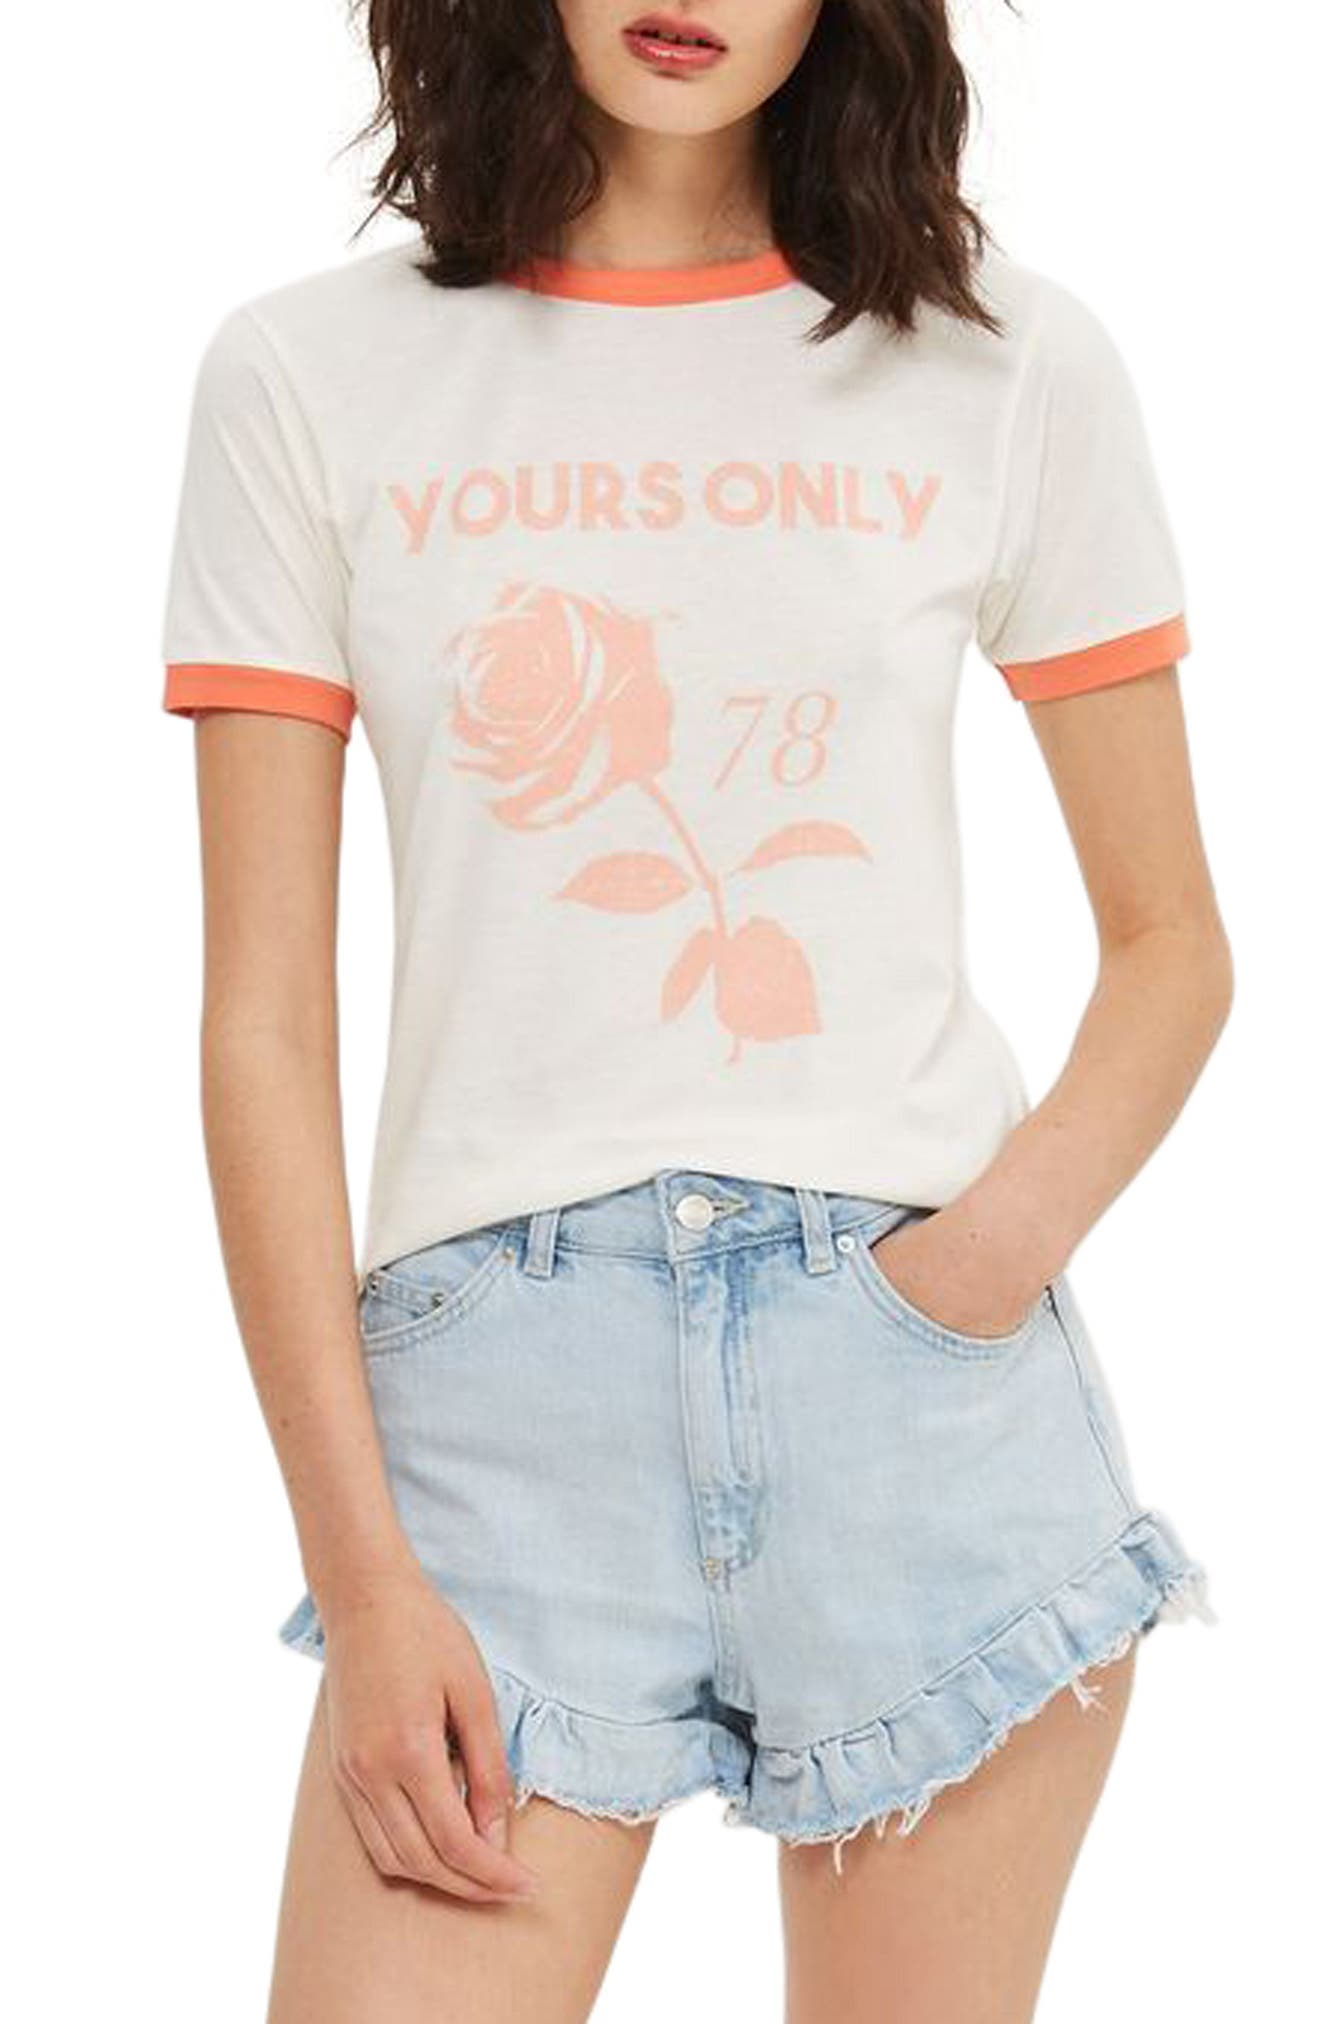 Topshop Yours Only Graphic Ringer Tee